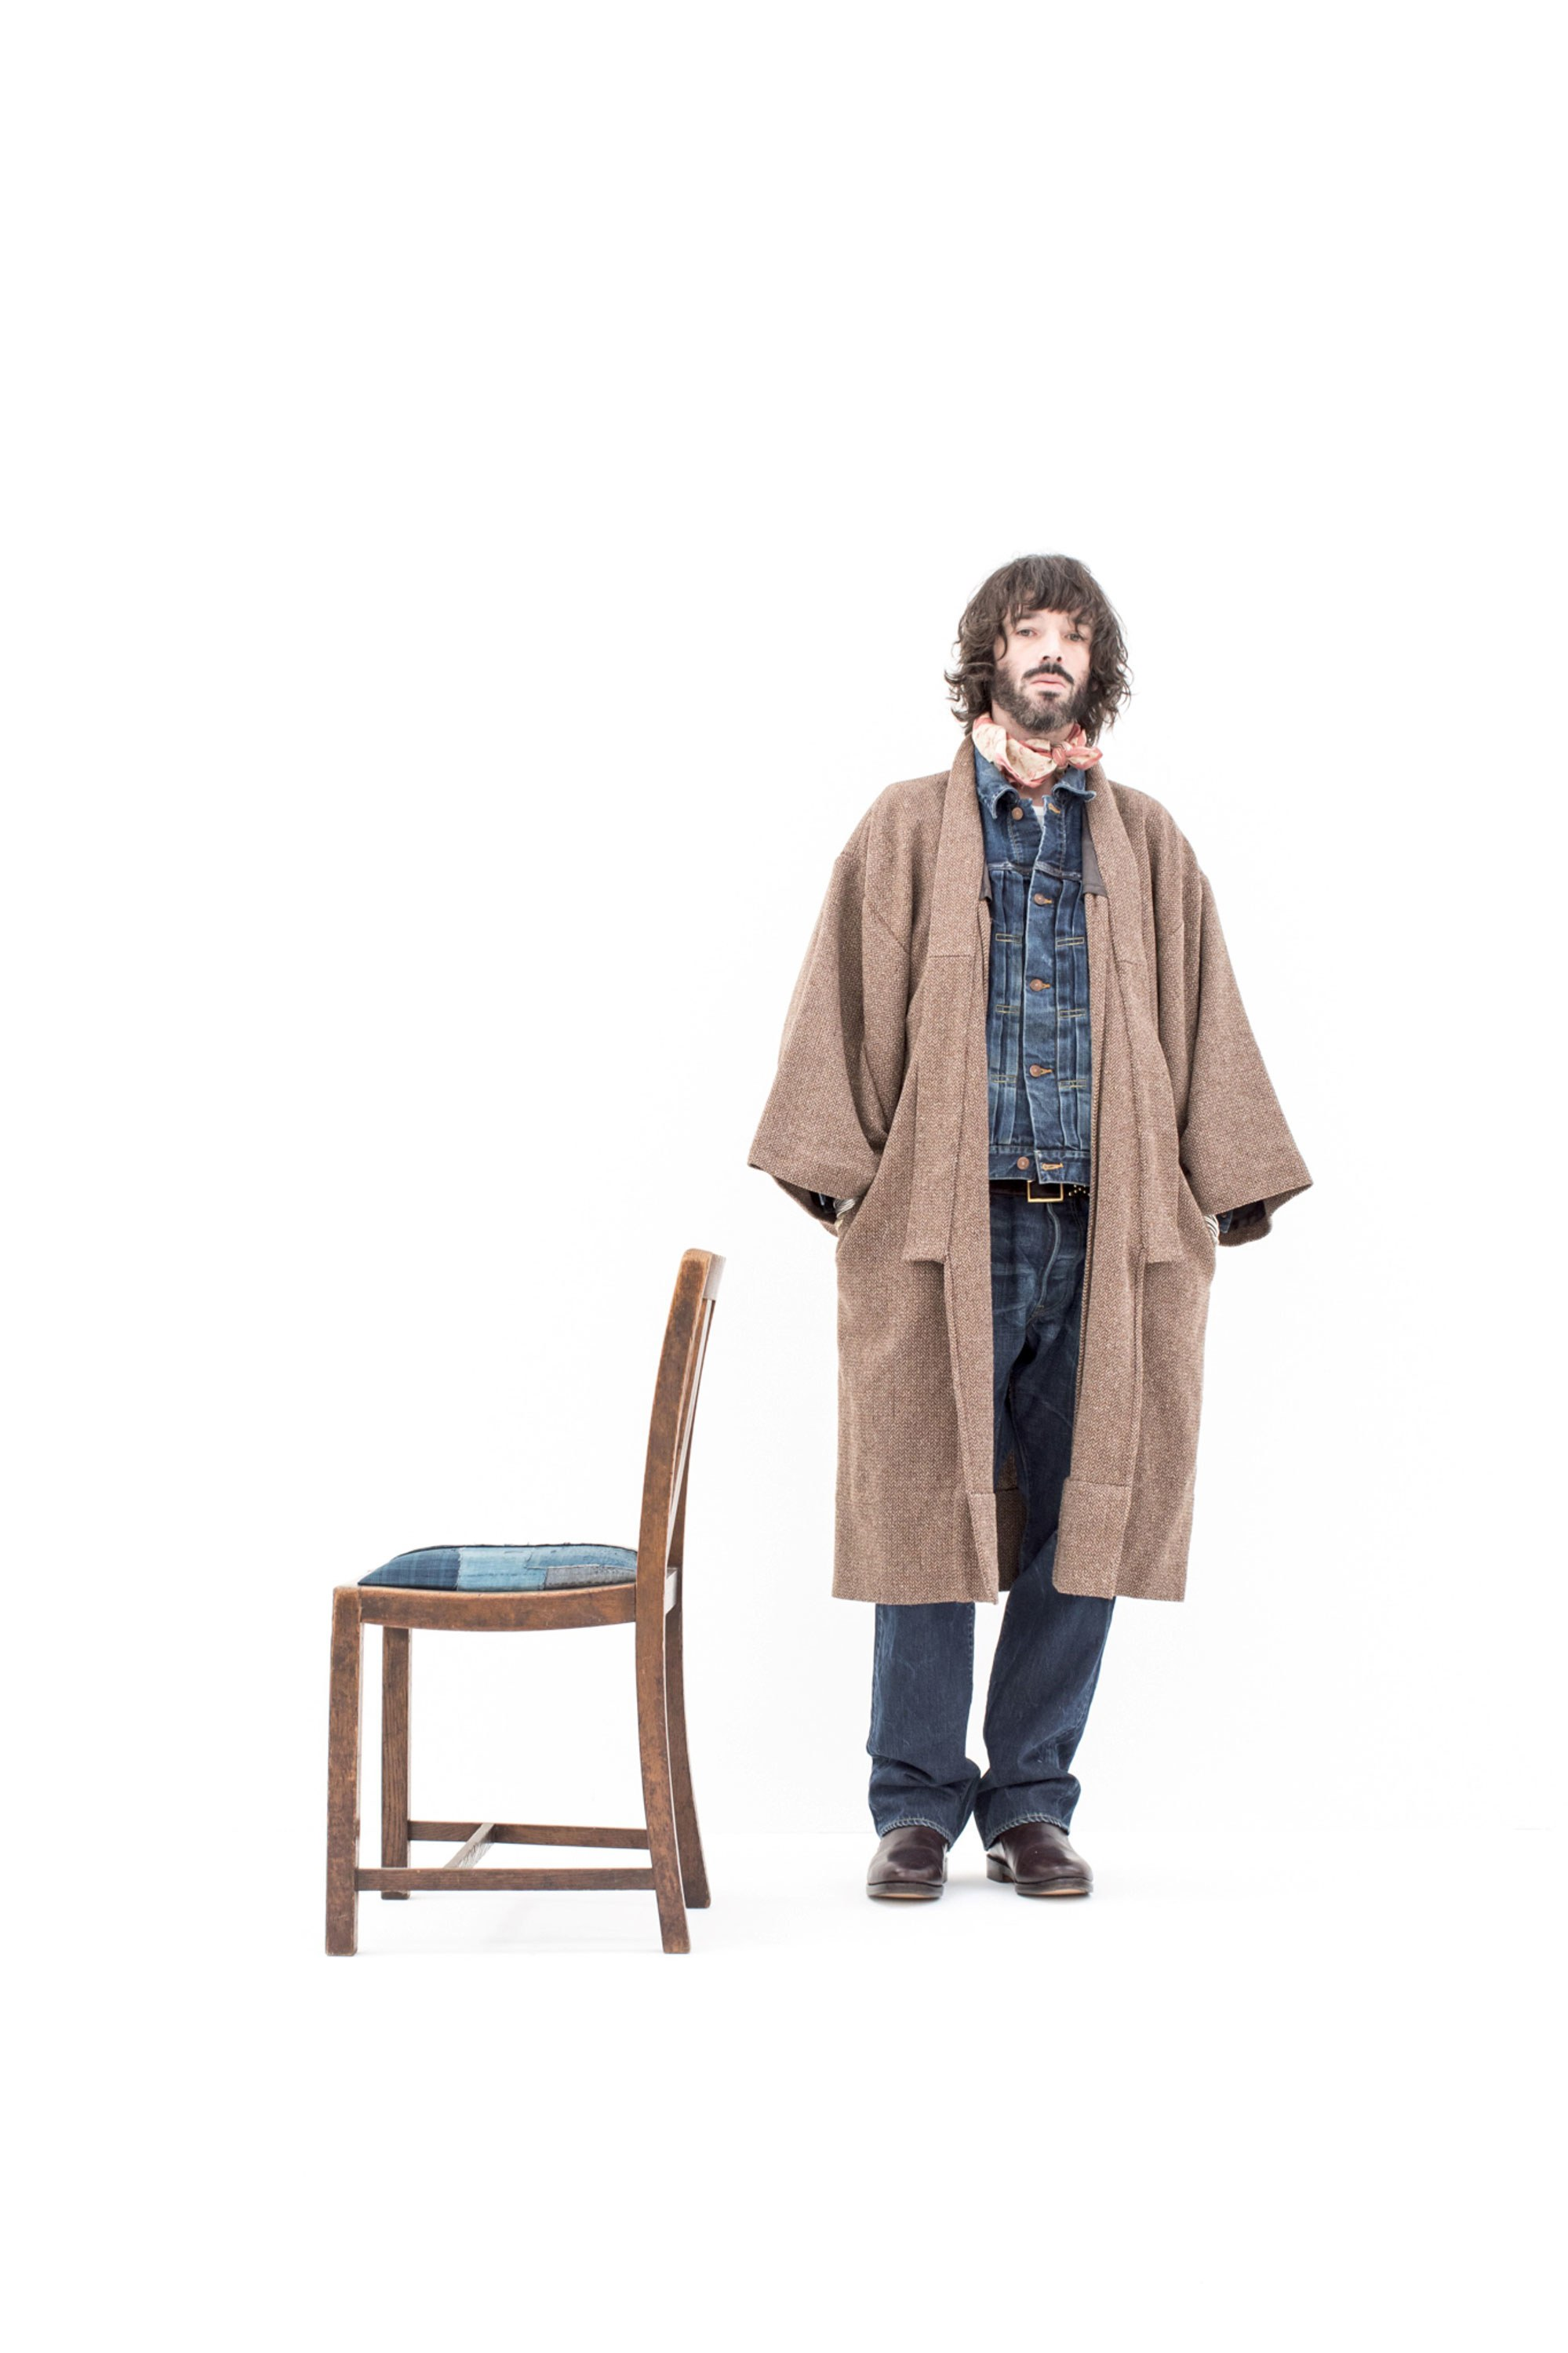 visvim 2017 Fall Ready-To-Wear Collection - 3723403